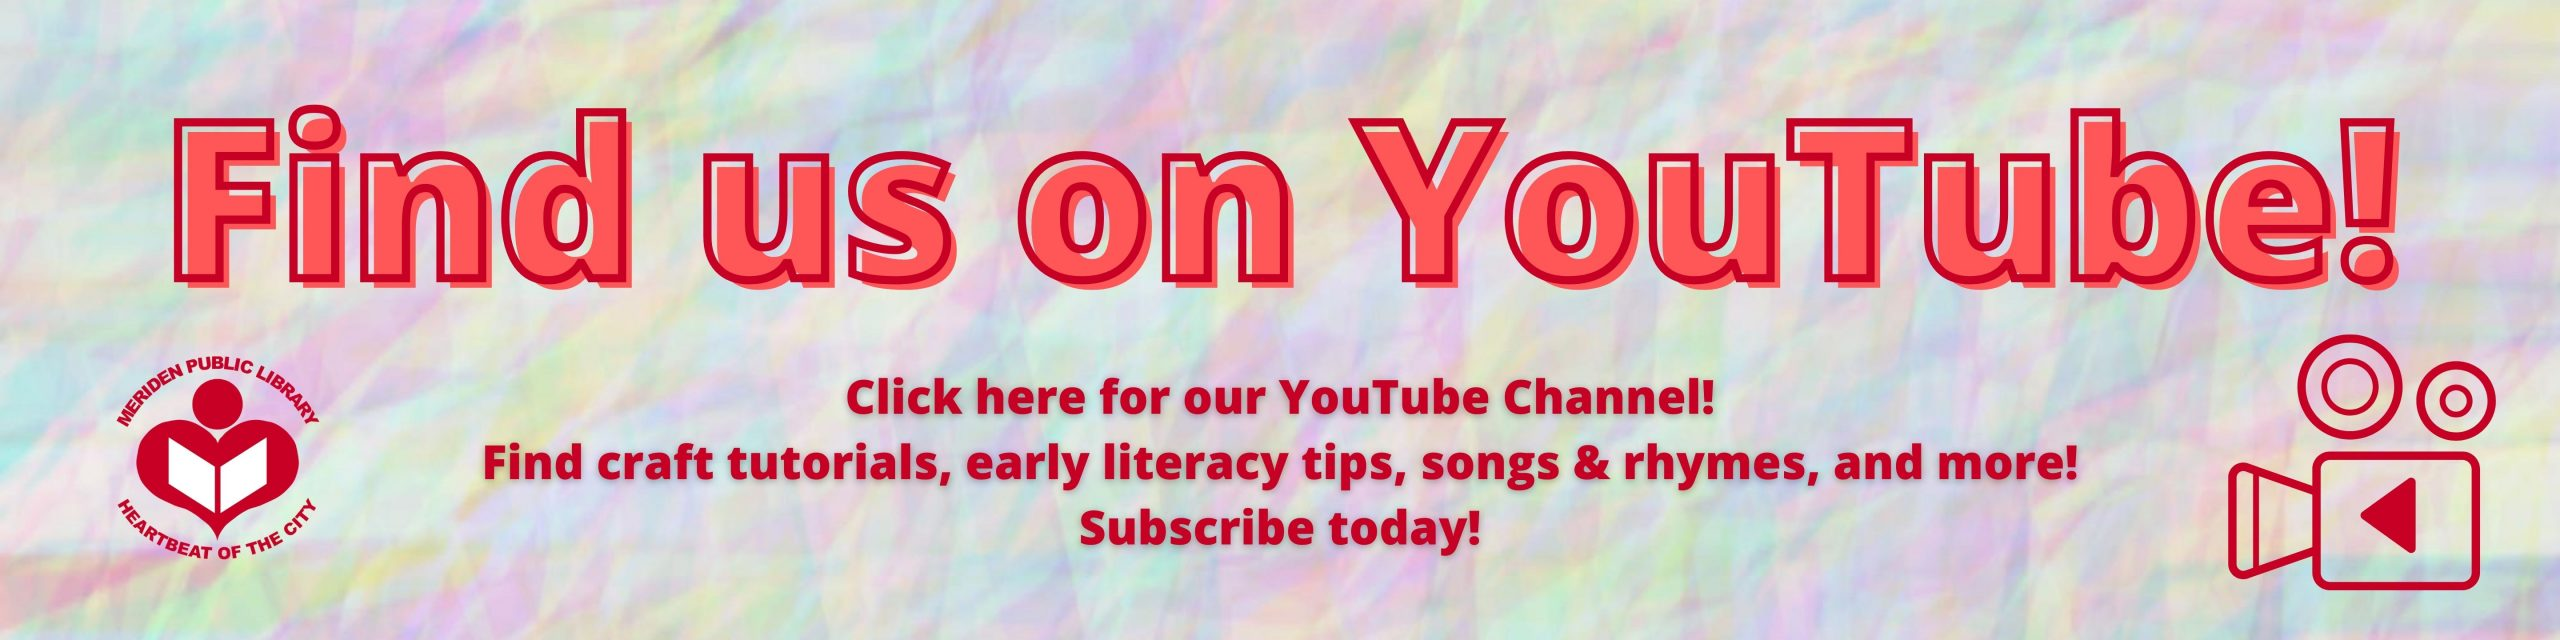 find us on youtube!